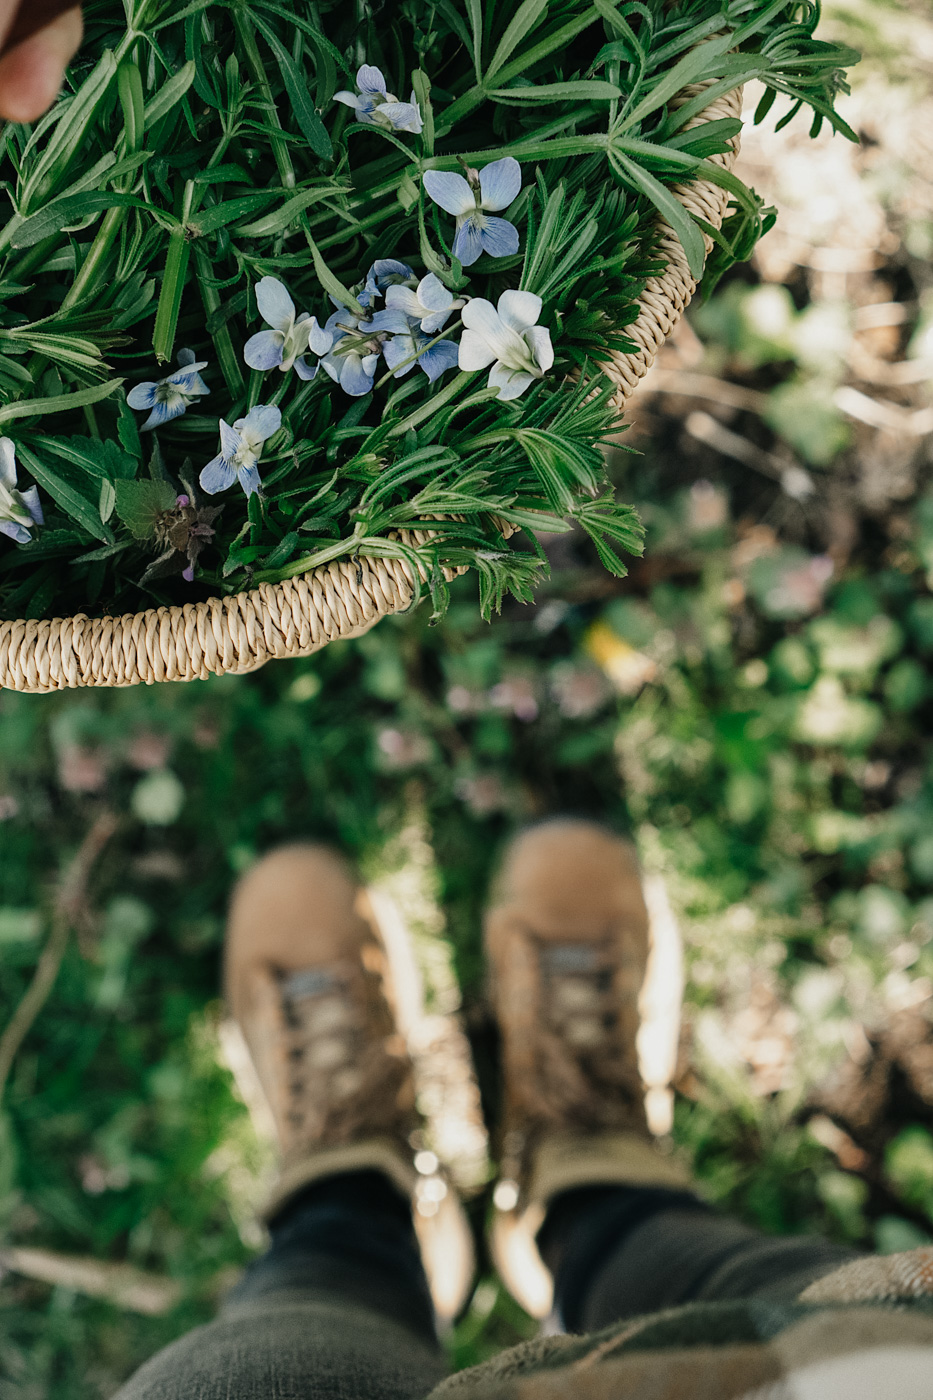 Herbal Academy's The Foraging Course – Learn how to wildcraft safely